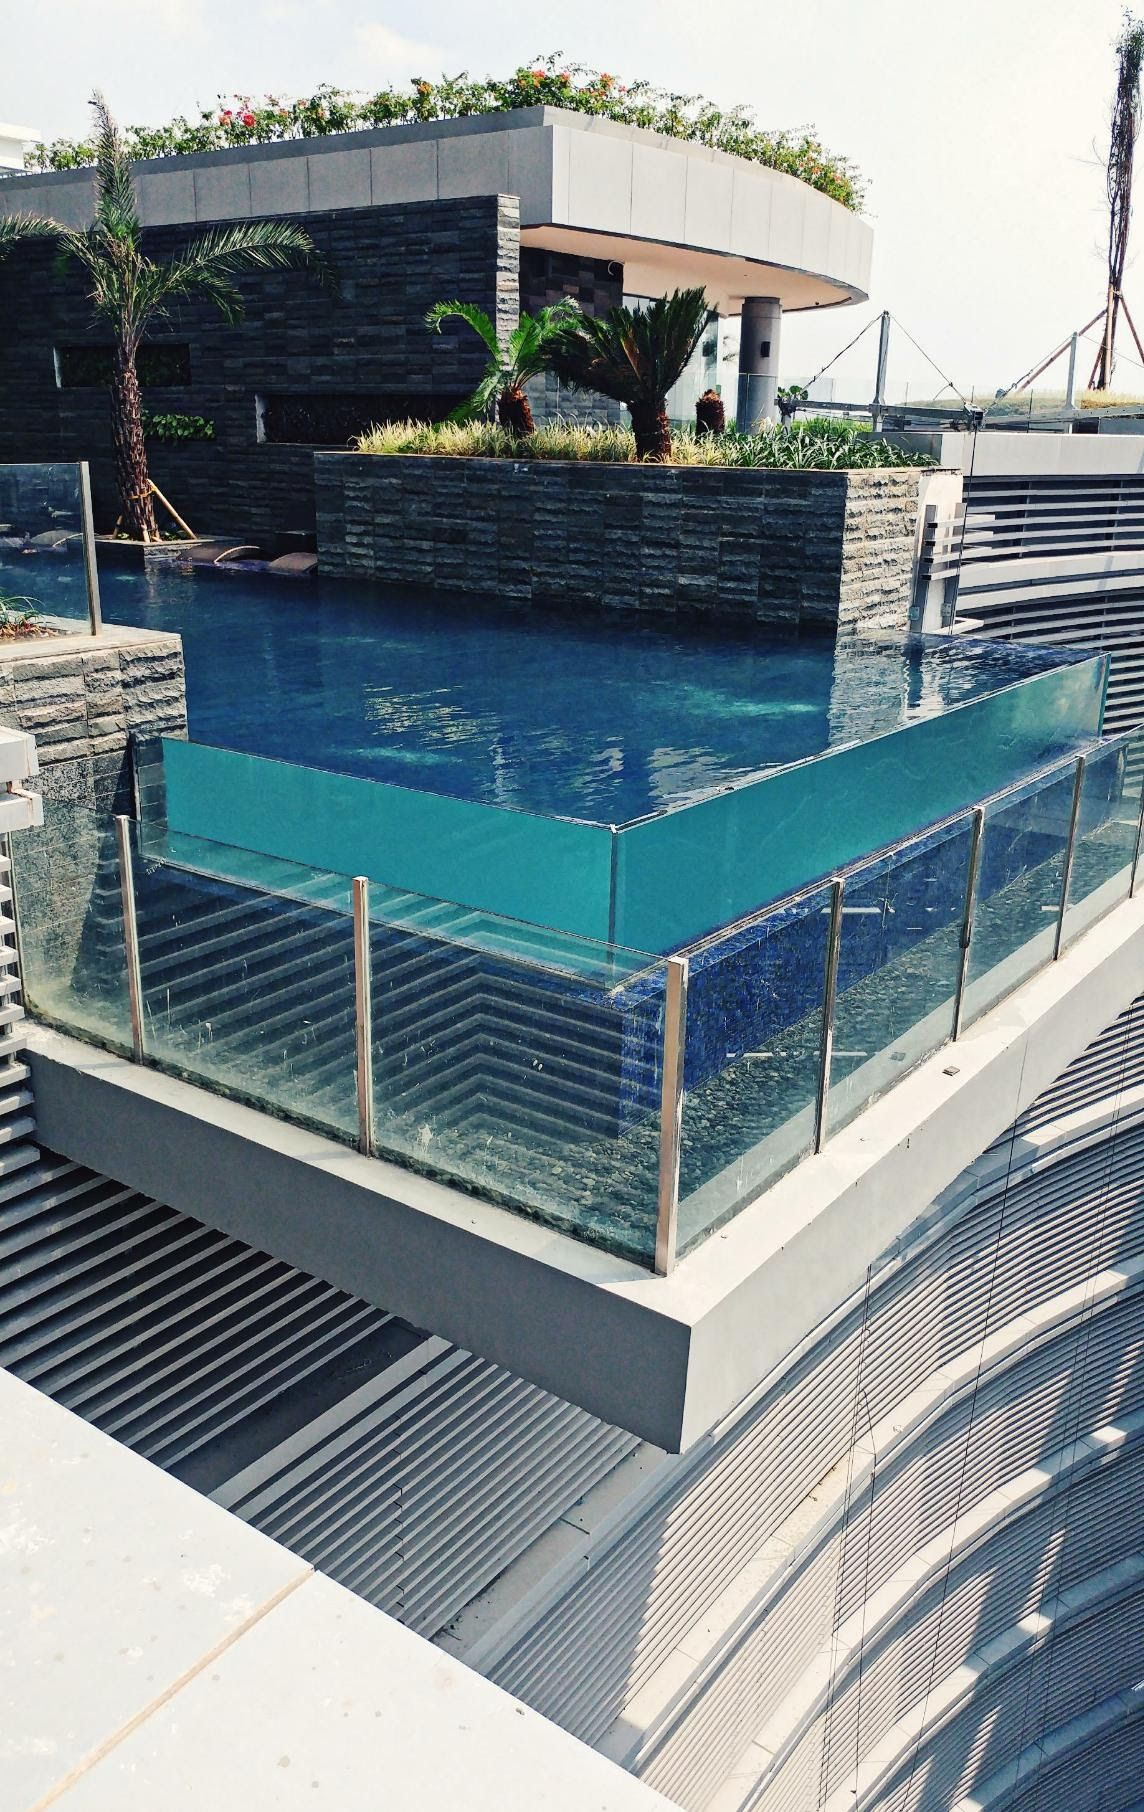 Swimming Pool On The Roof Top It Could Be Dangerous For The Rider In The Street Below Oc Swimming Pool Architecture Hot Tub Garden Amazing Swimming Pools